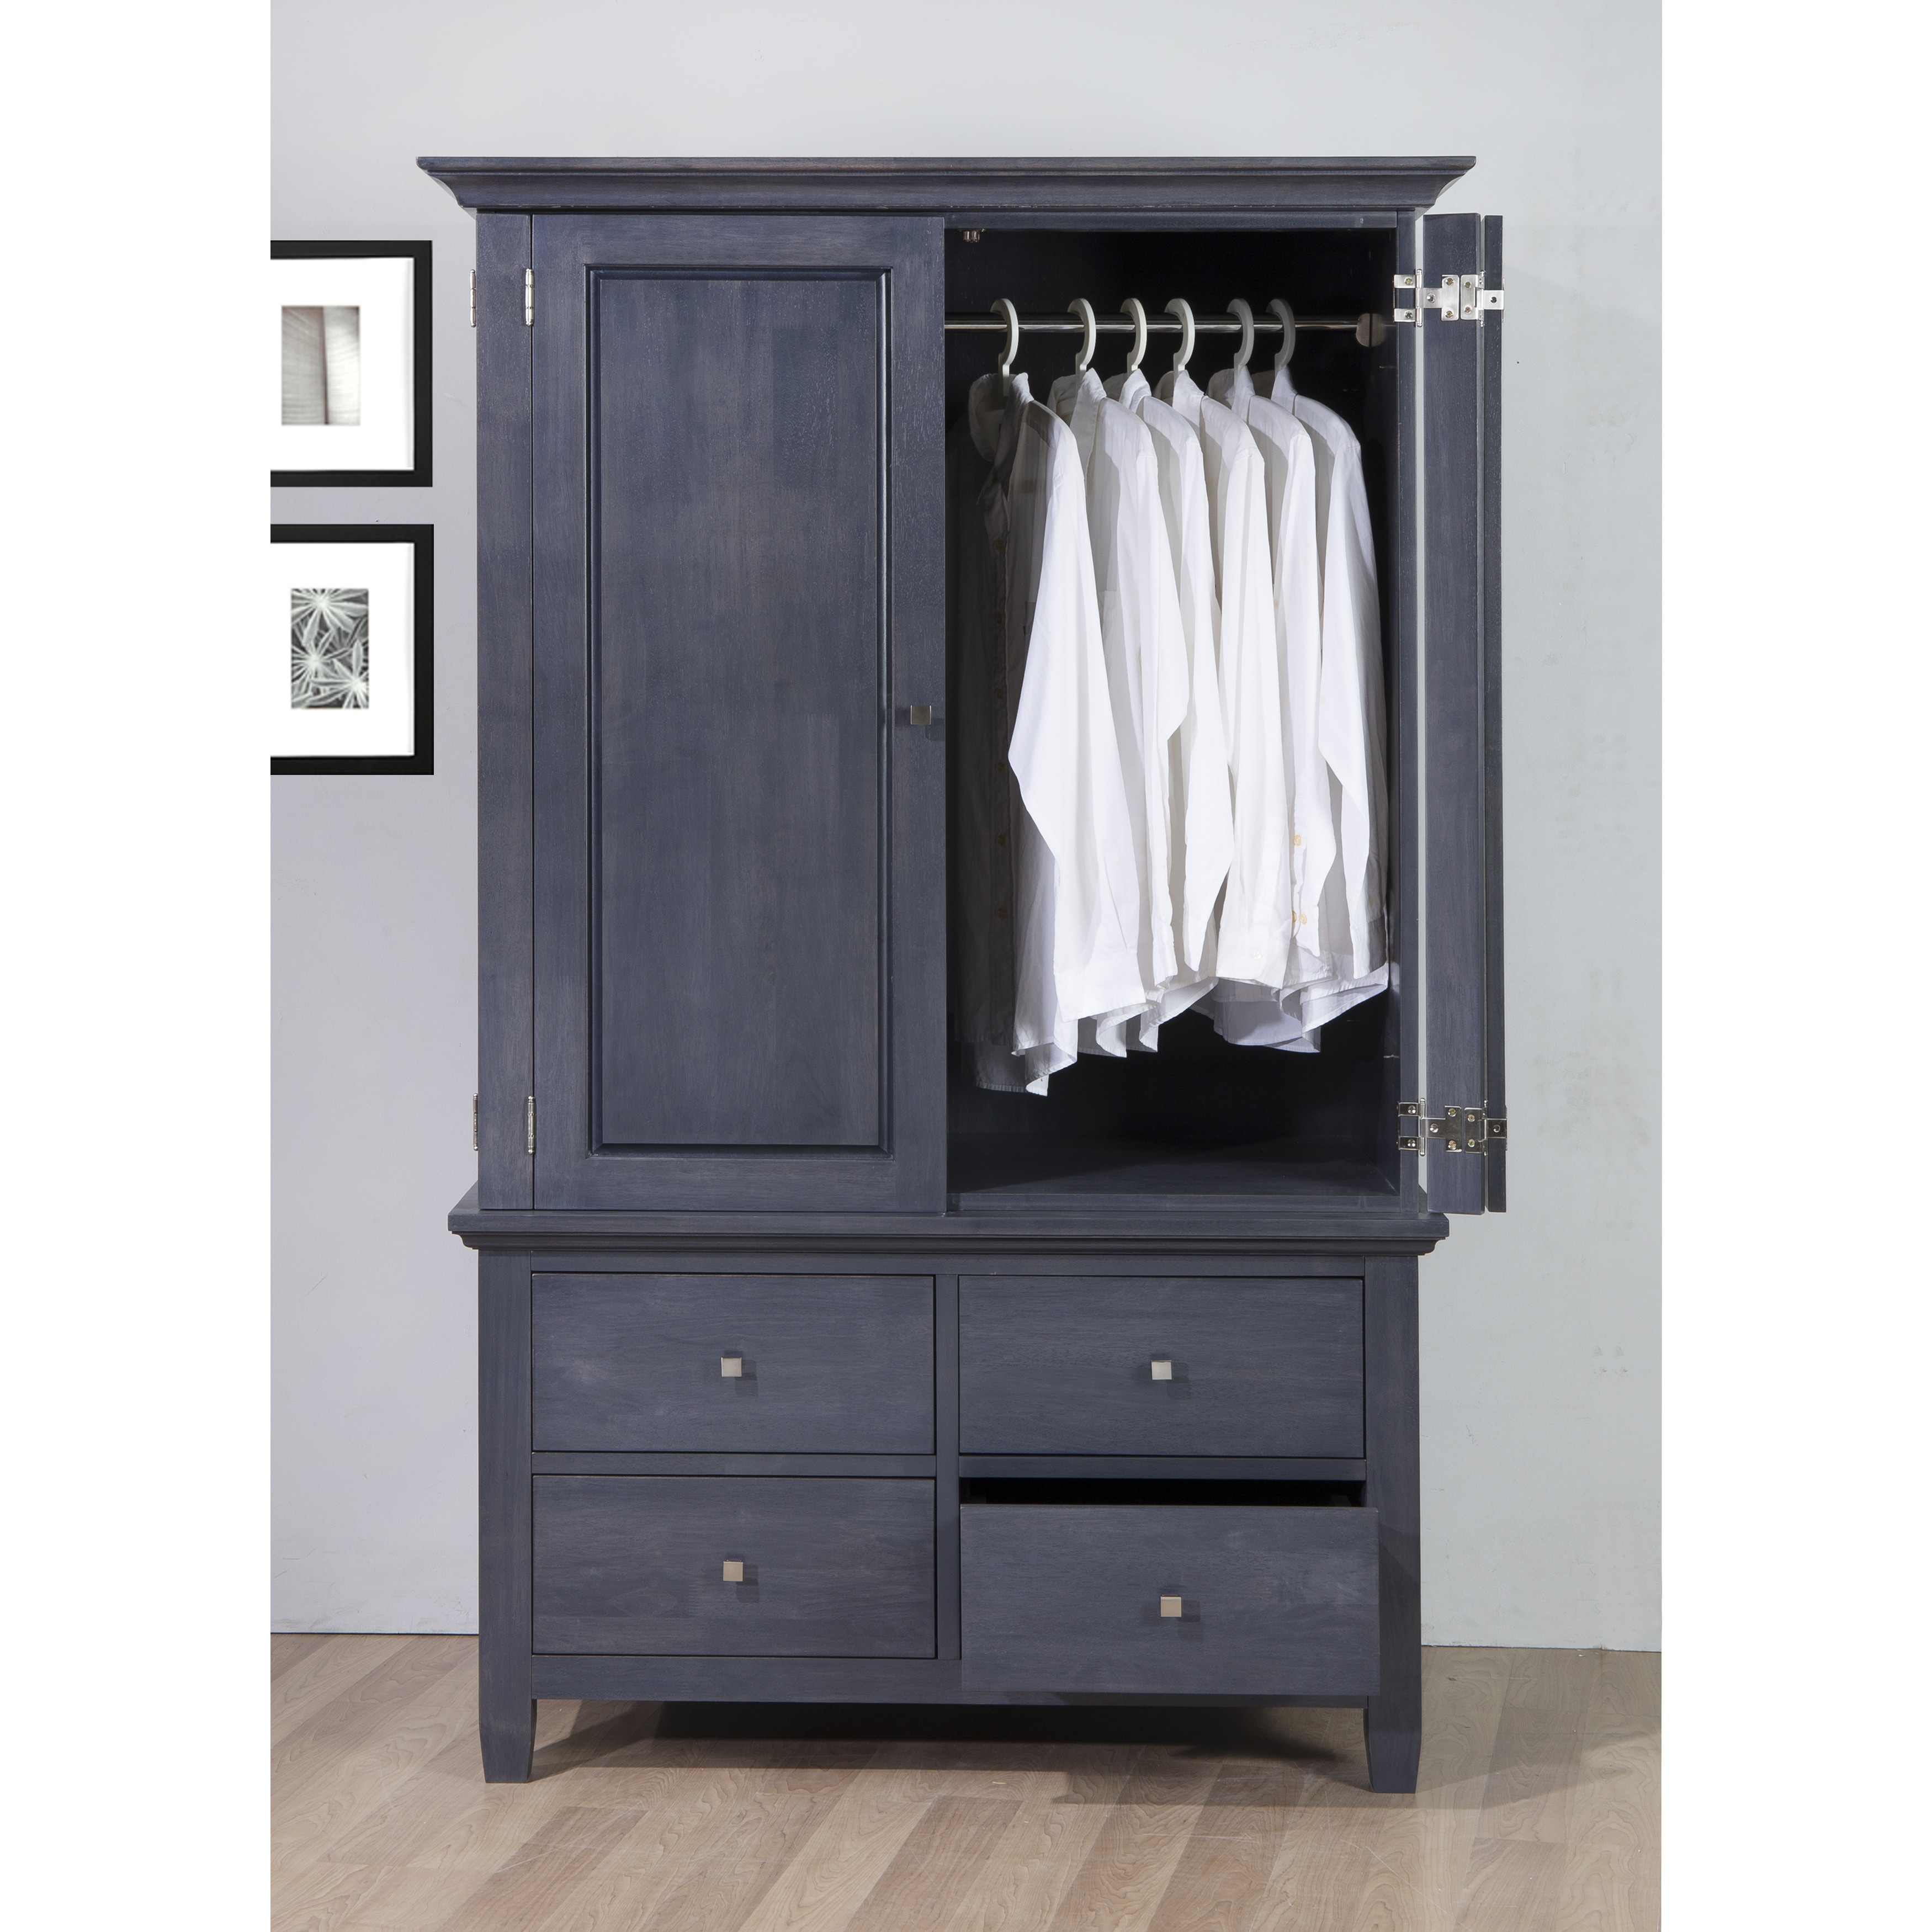 made project wardrobe file custom fitted grey brown and furniture